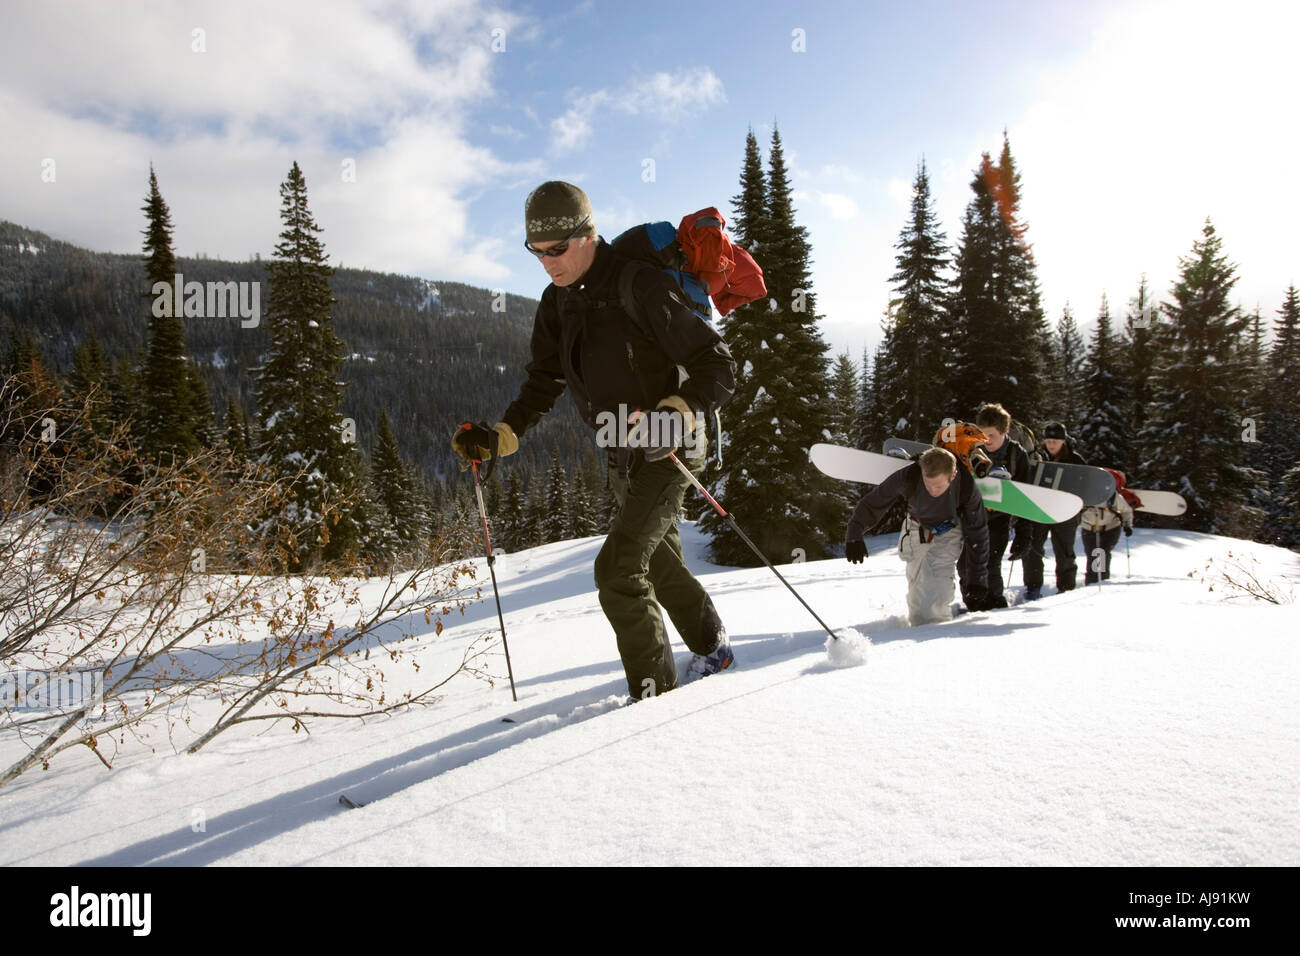 Skiers and snowboarders climb uphill - Stock Image